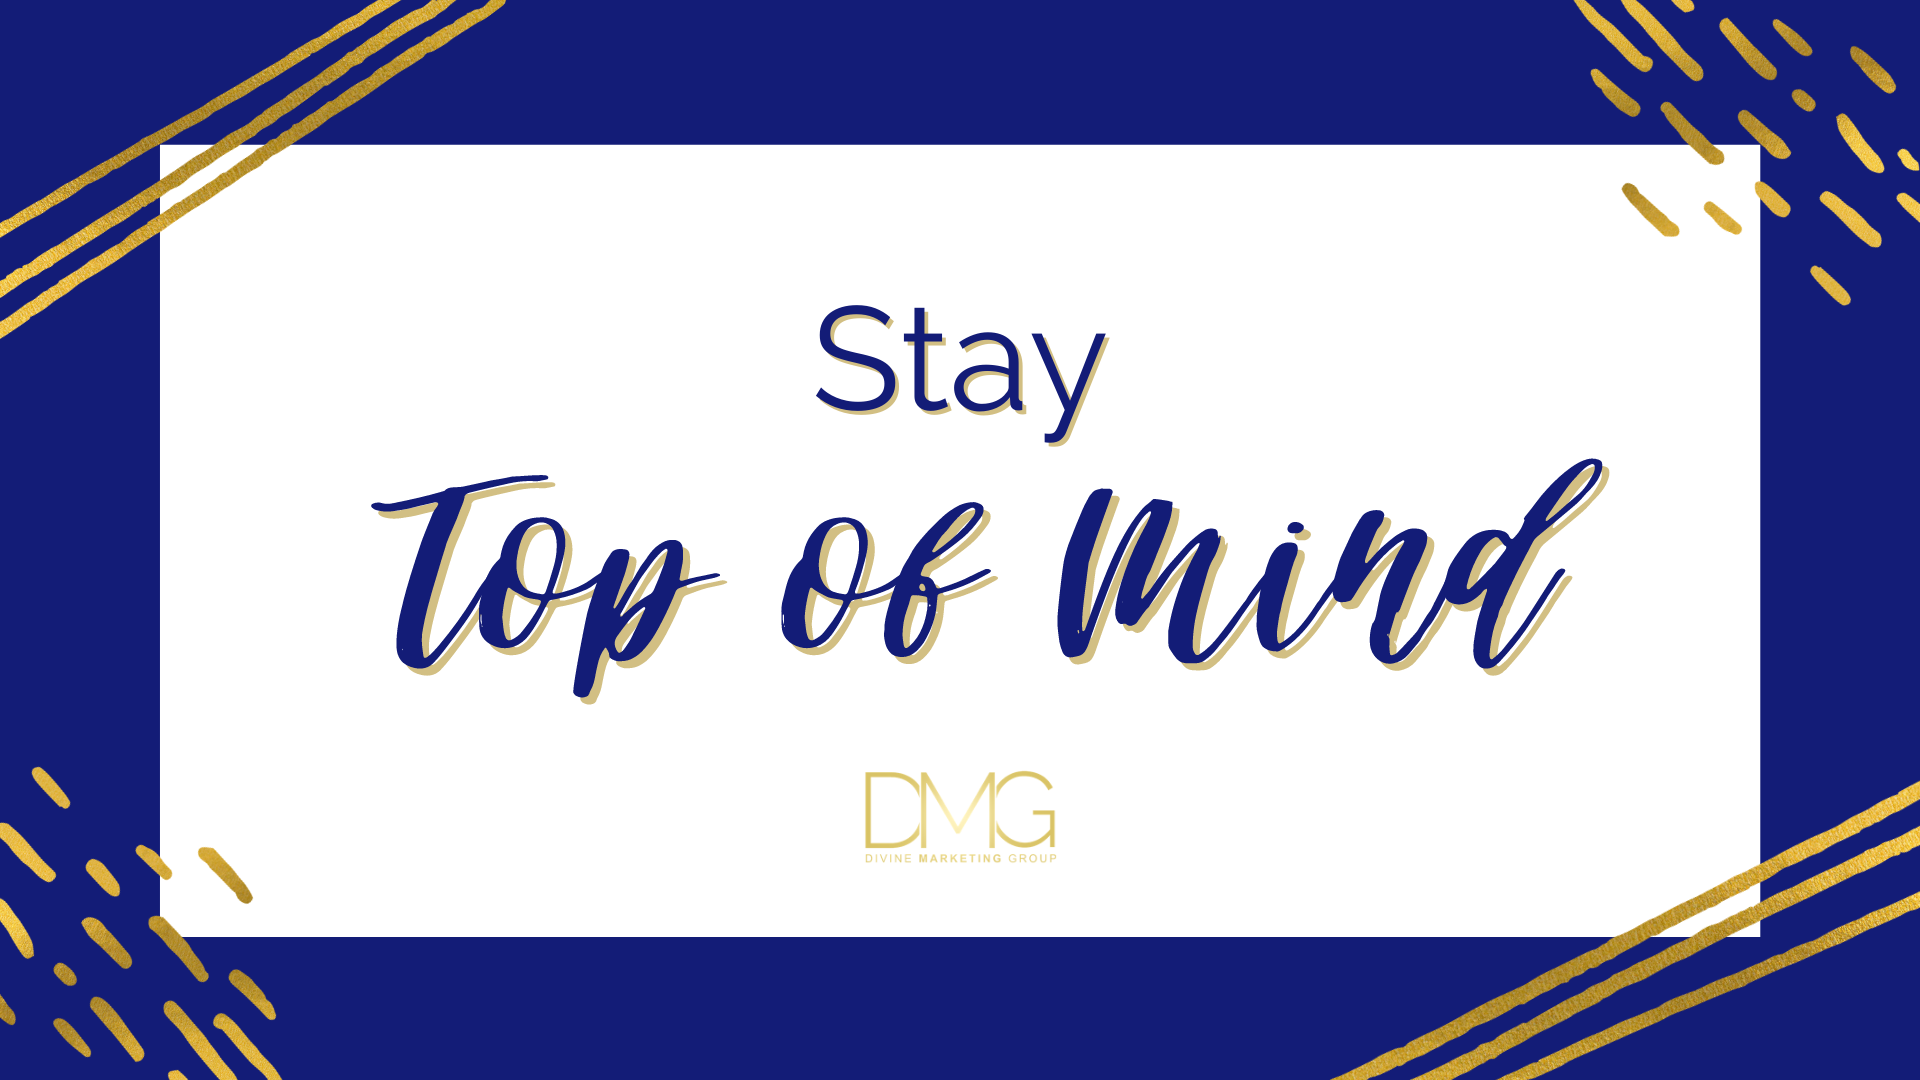 Marketing Tip 2 - Stay Top of Mind